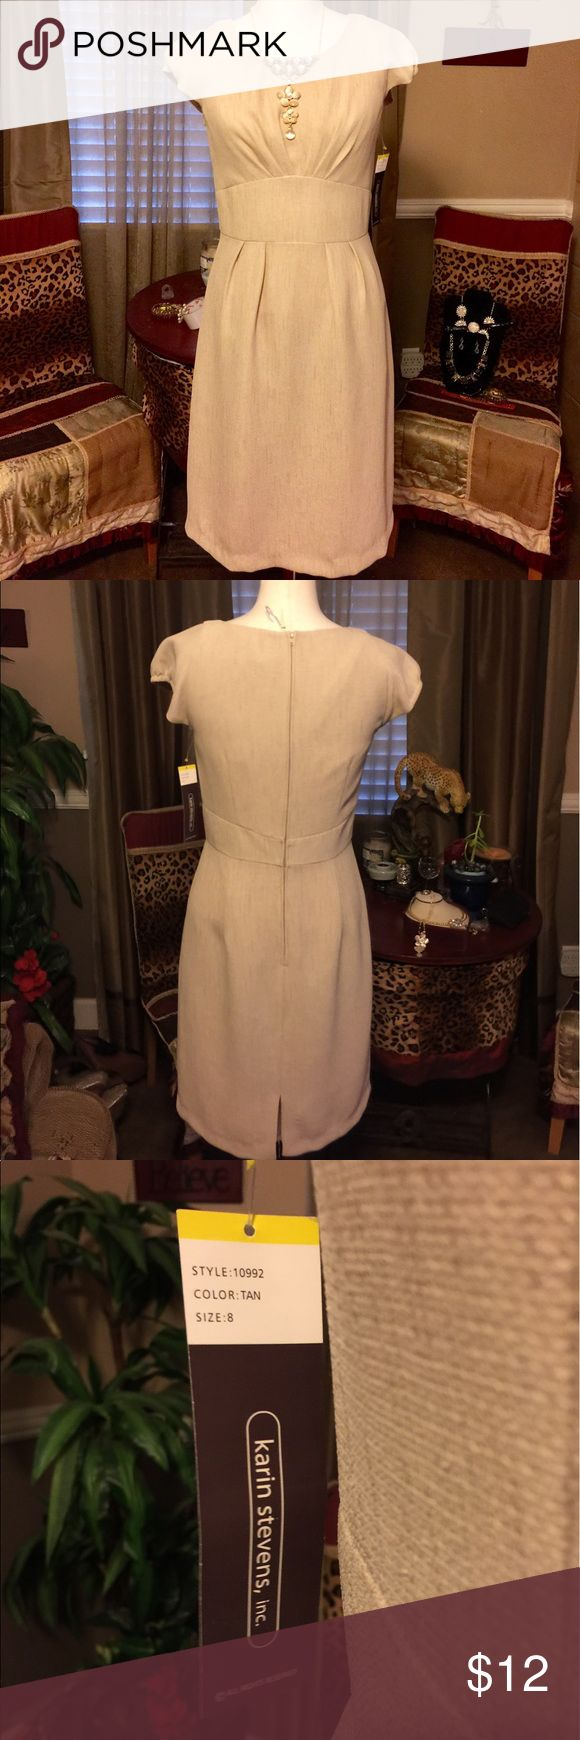 Simple beige dress A great canvas to create your sense of style for almost any occasion. NWT karin stevens Dresses Midi